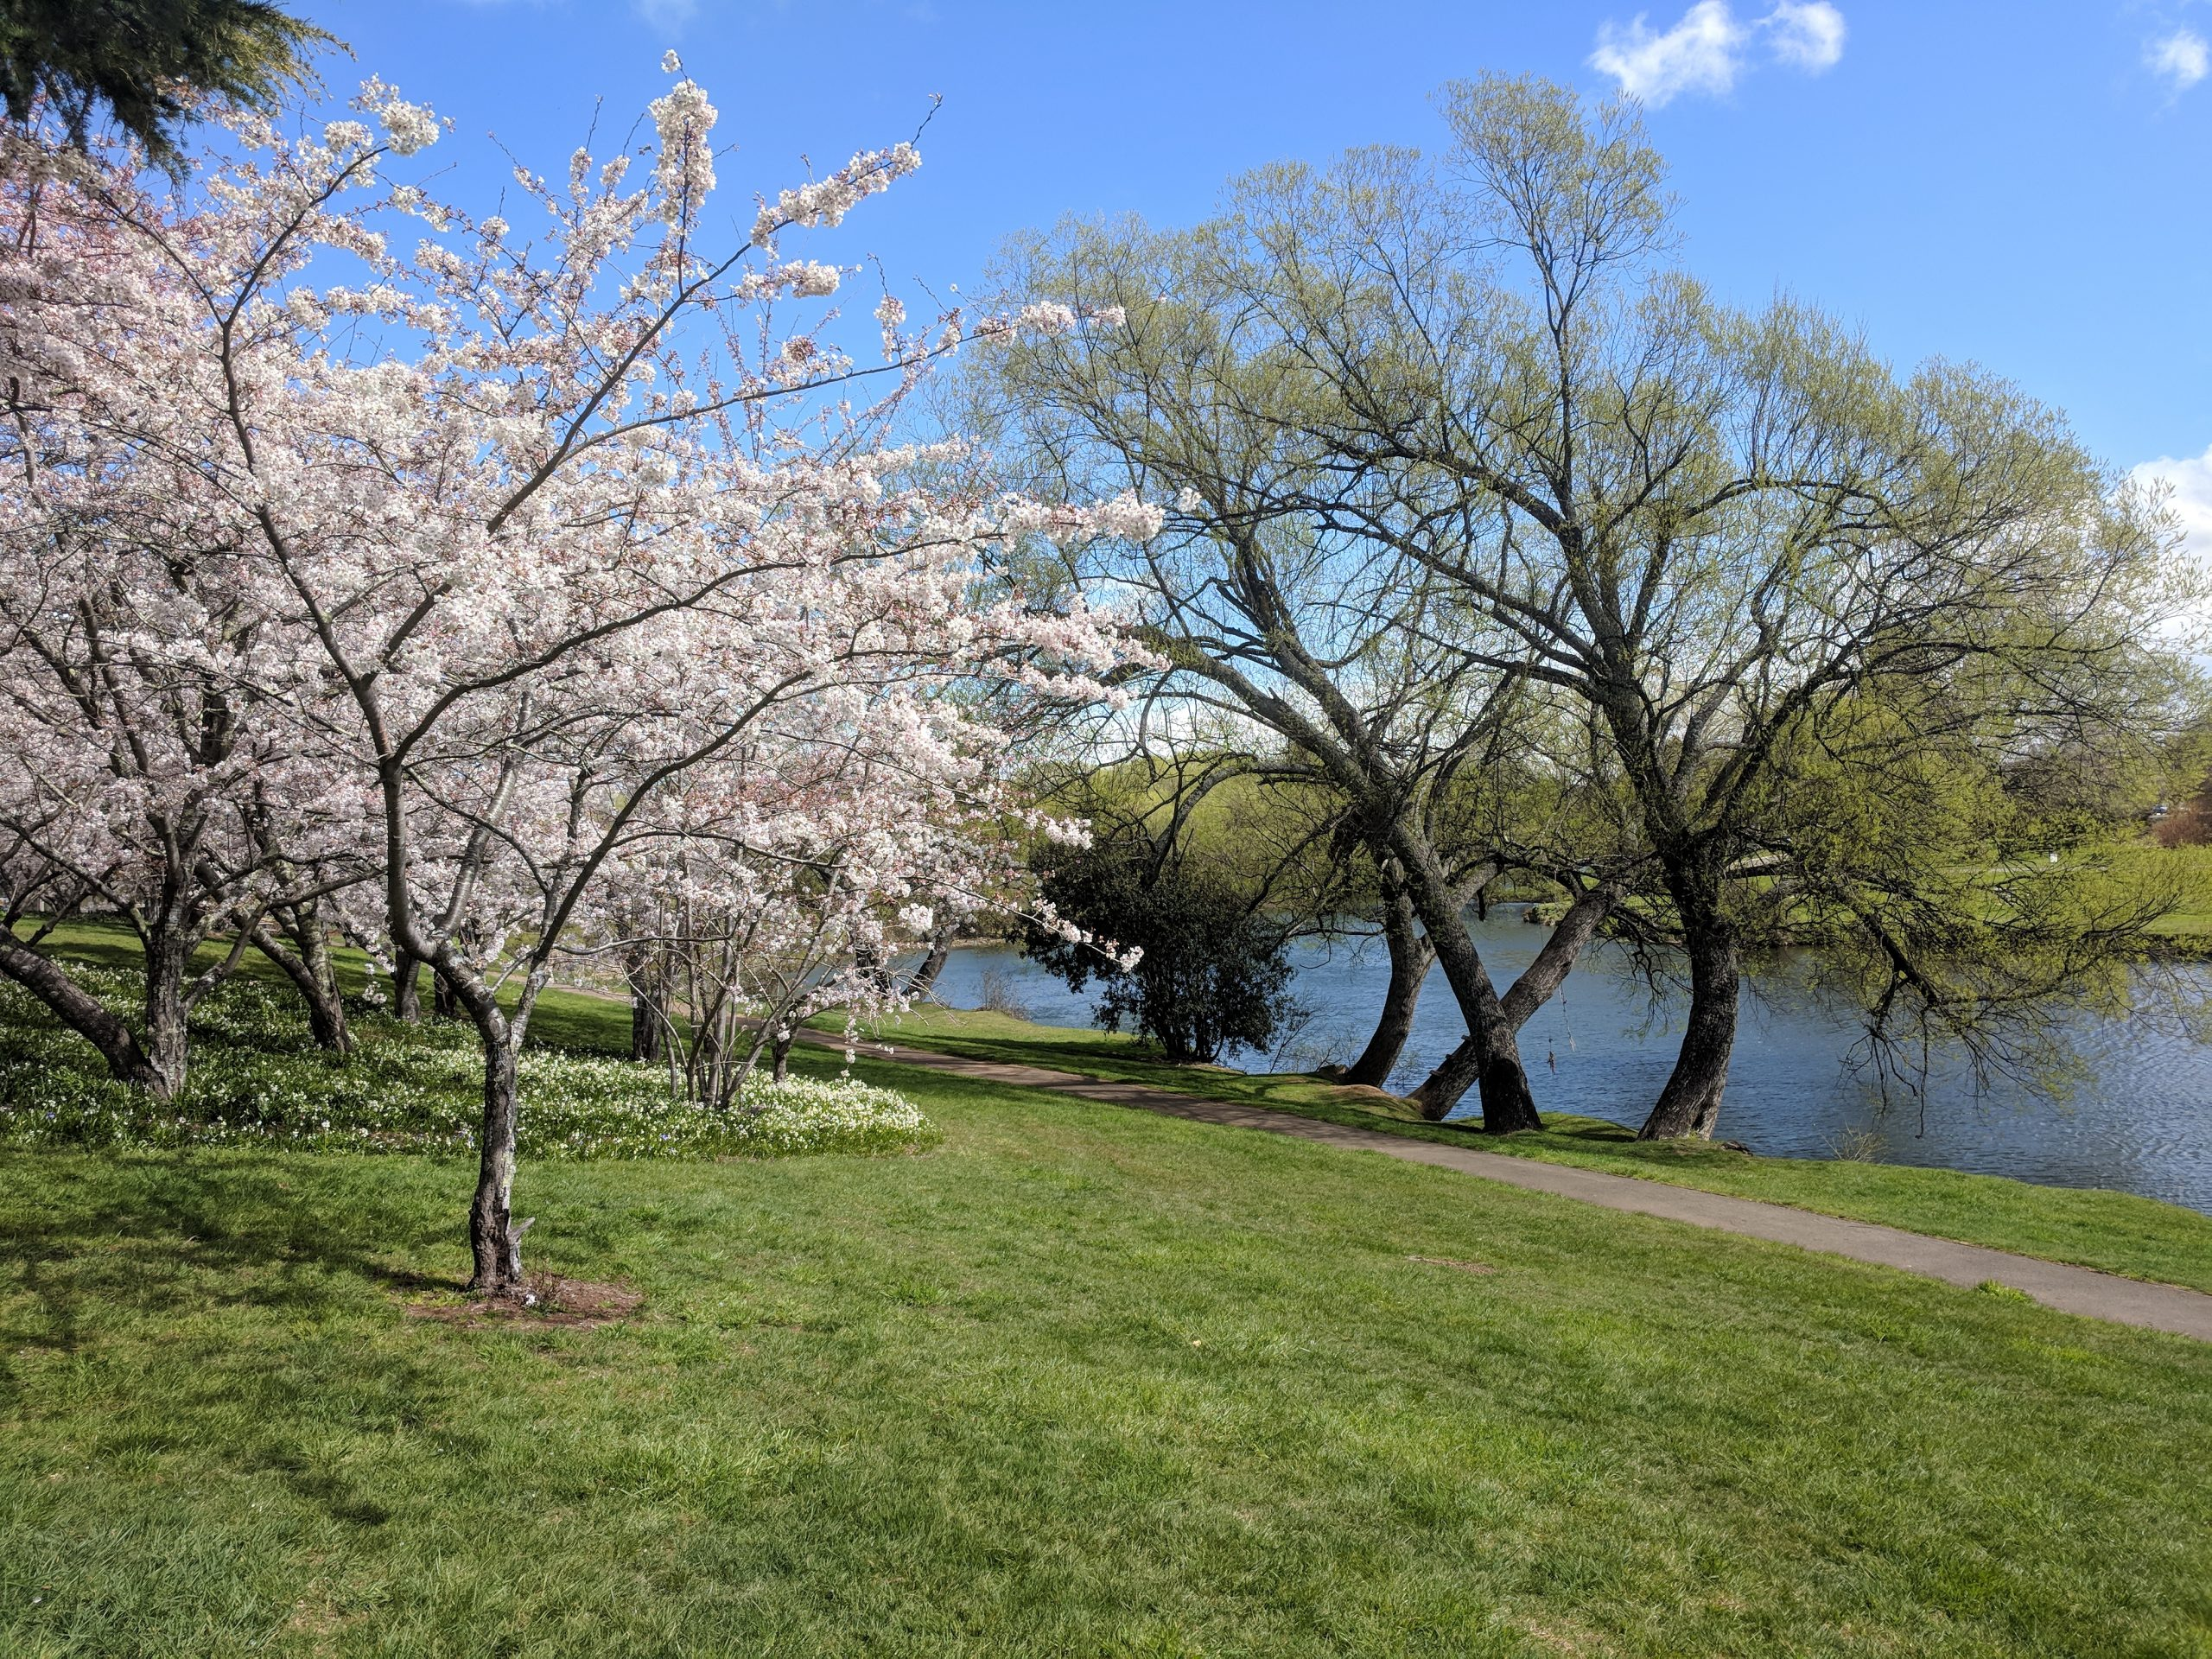 Spring Cherry Blossoms on the banks of the Meander River